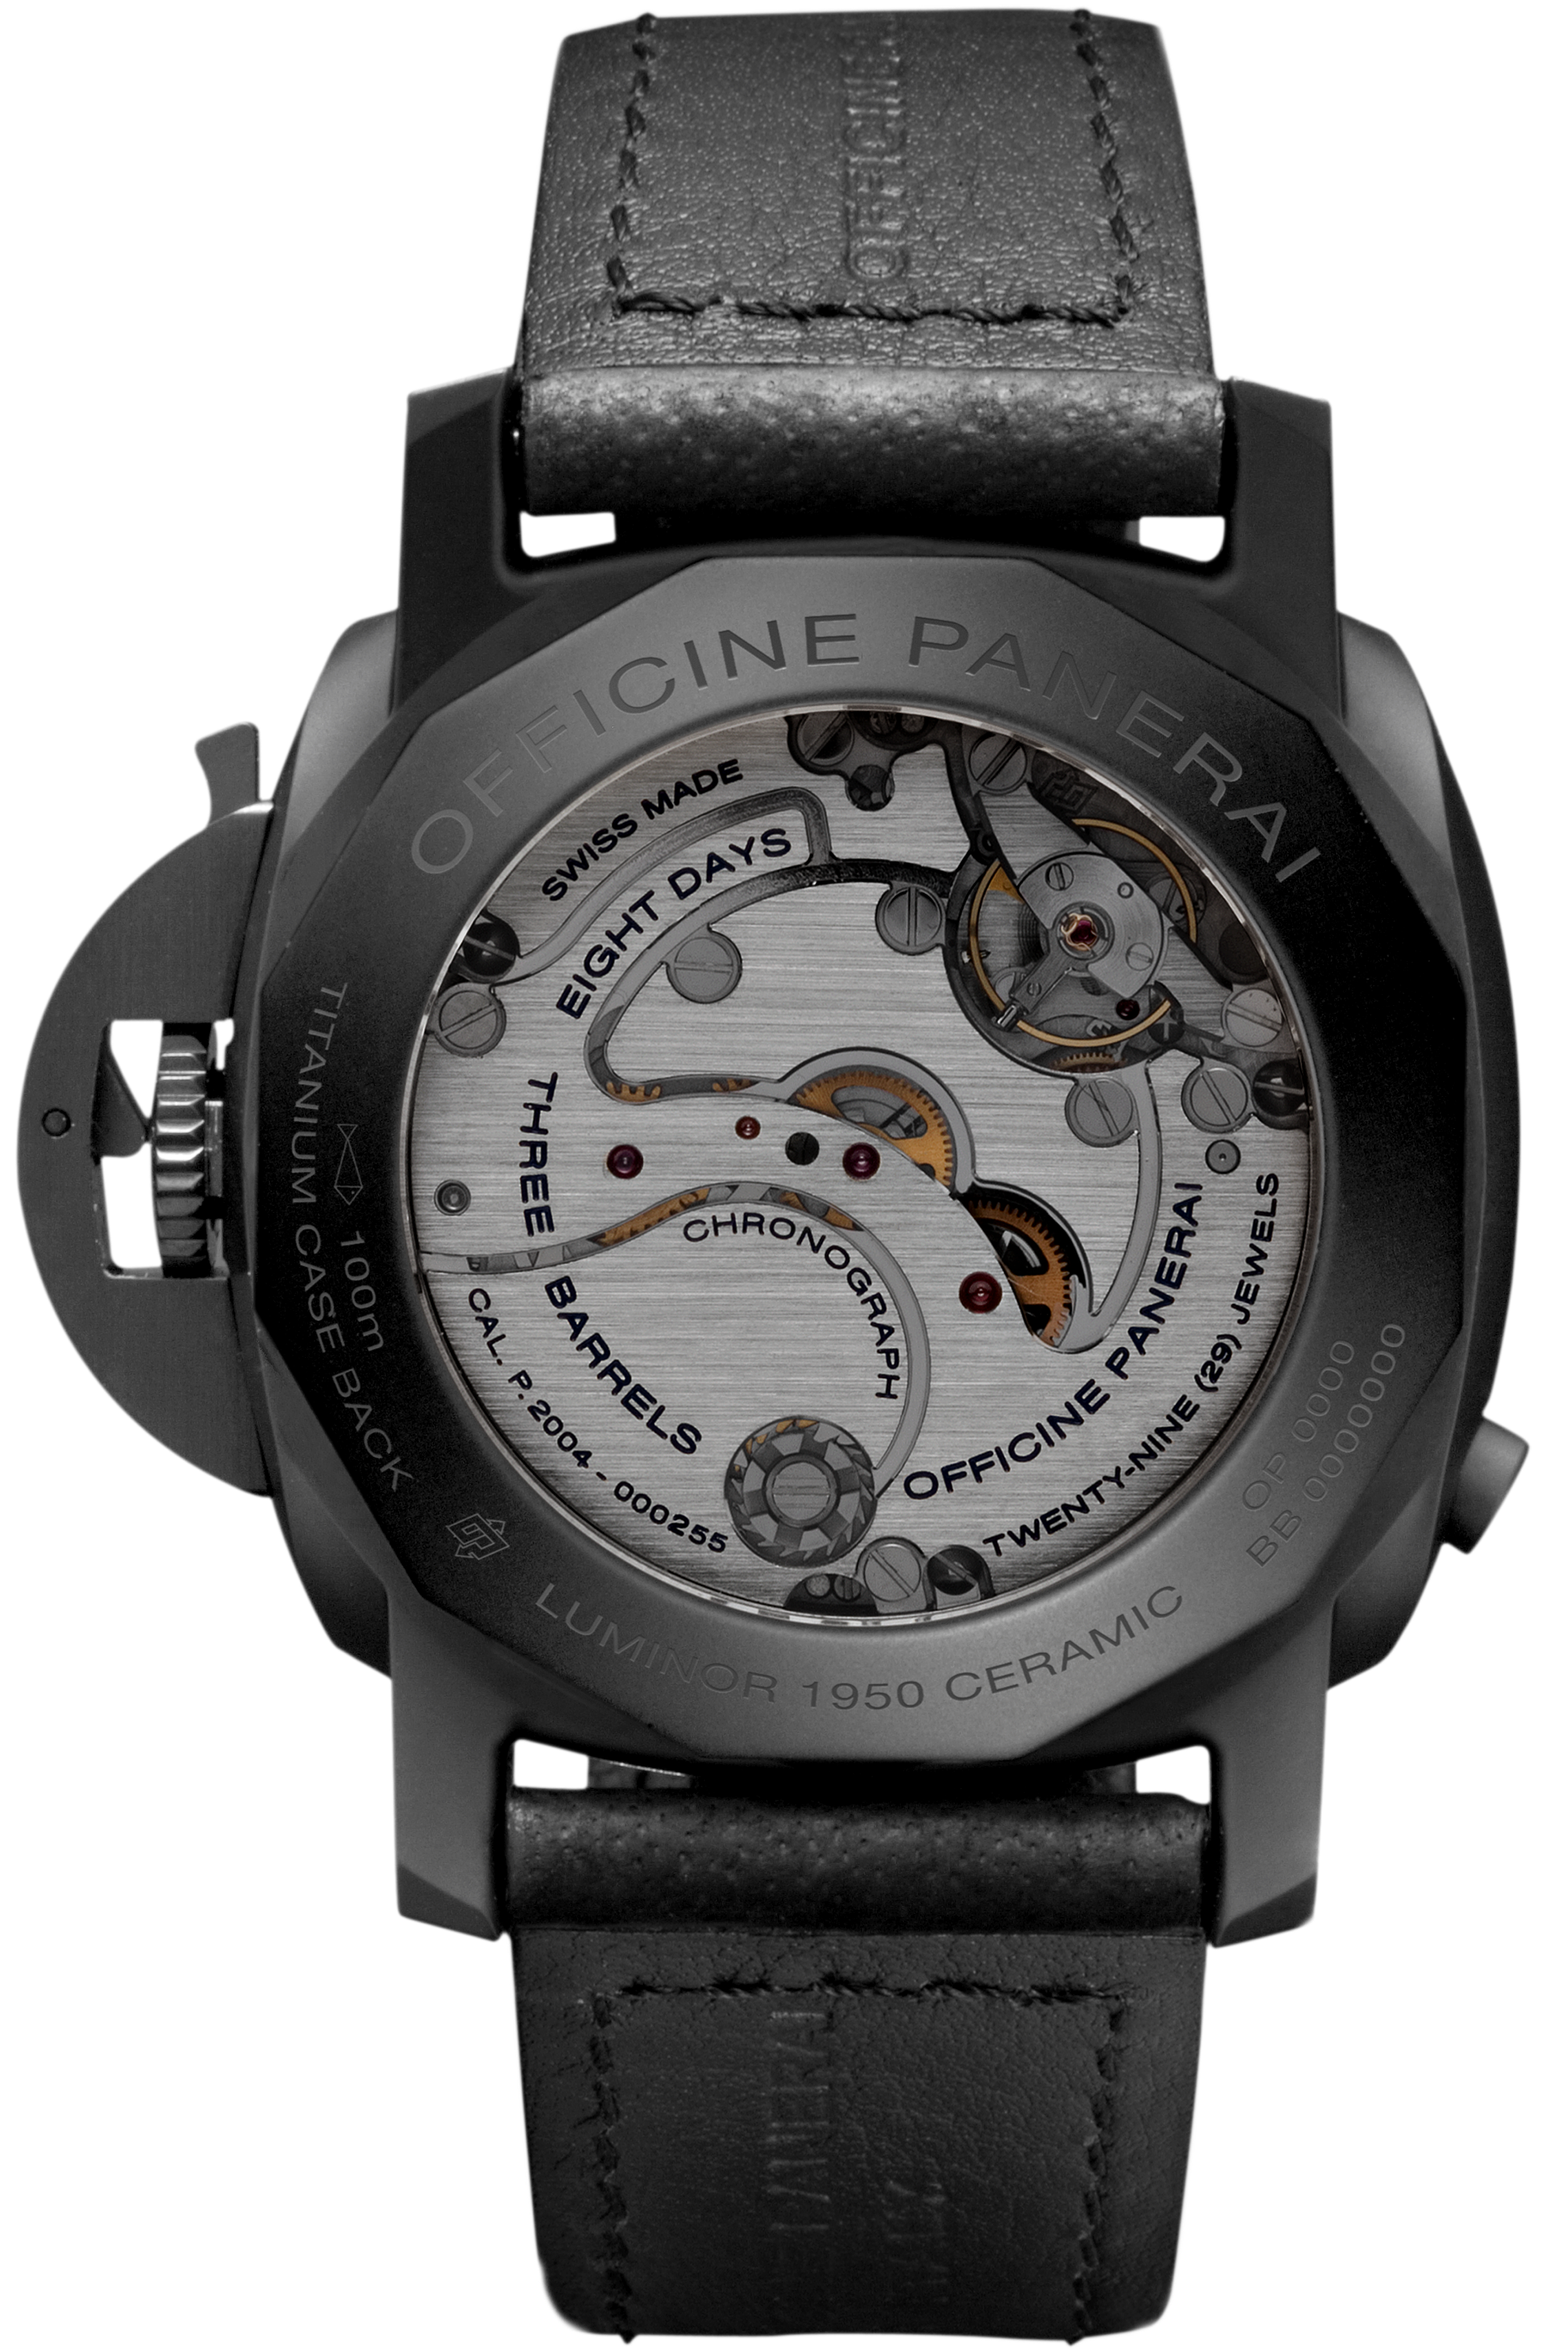 PNPAM00317 - Luminor Chrono Monopulsante 8 Days GMT - 44mm